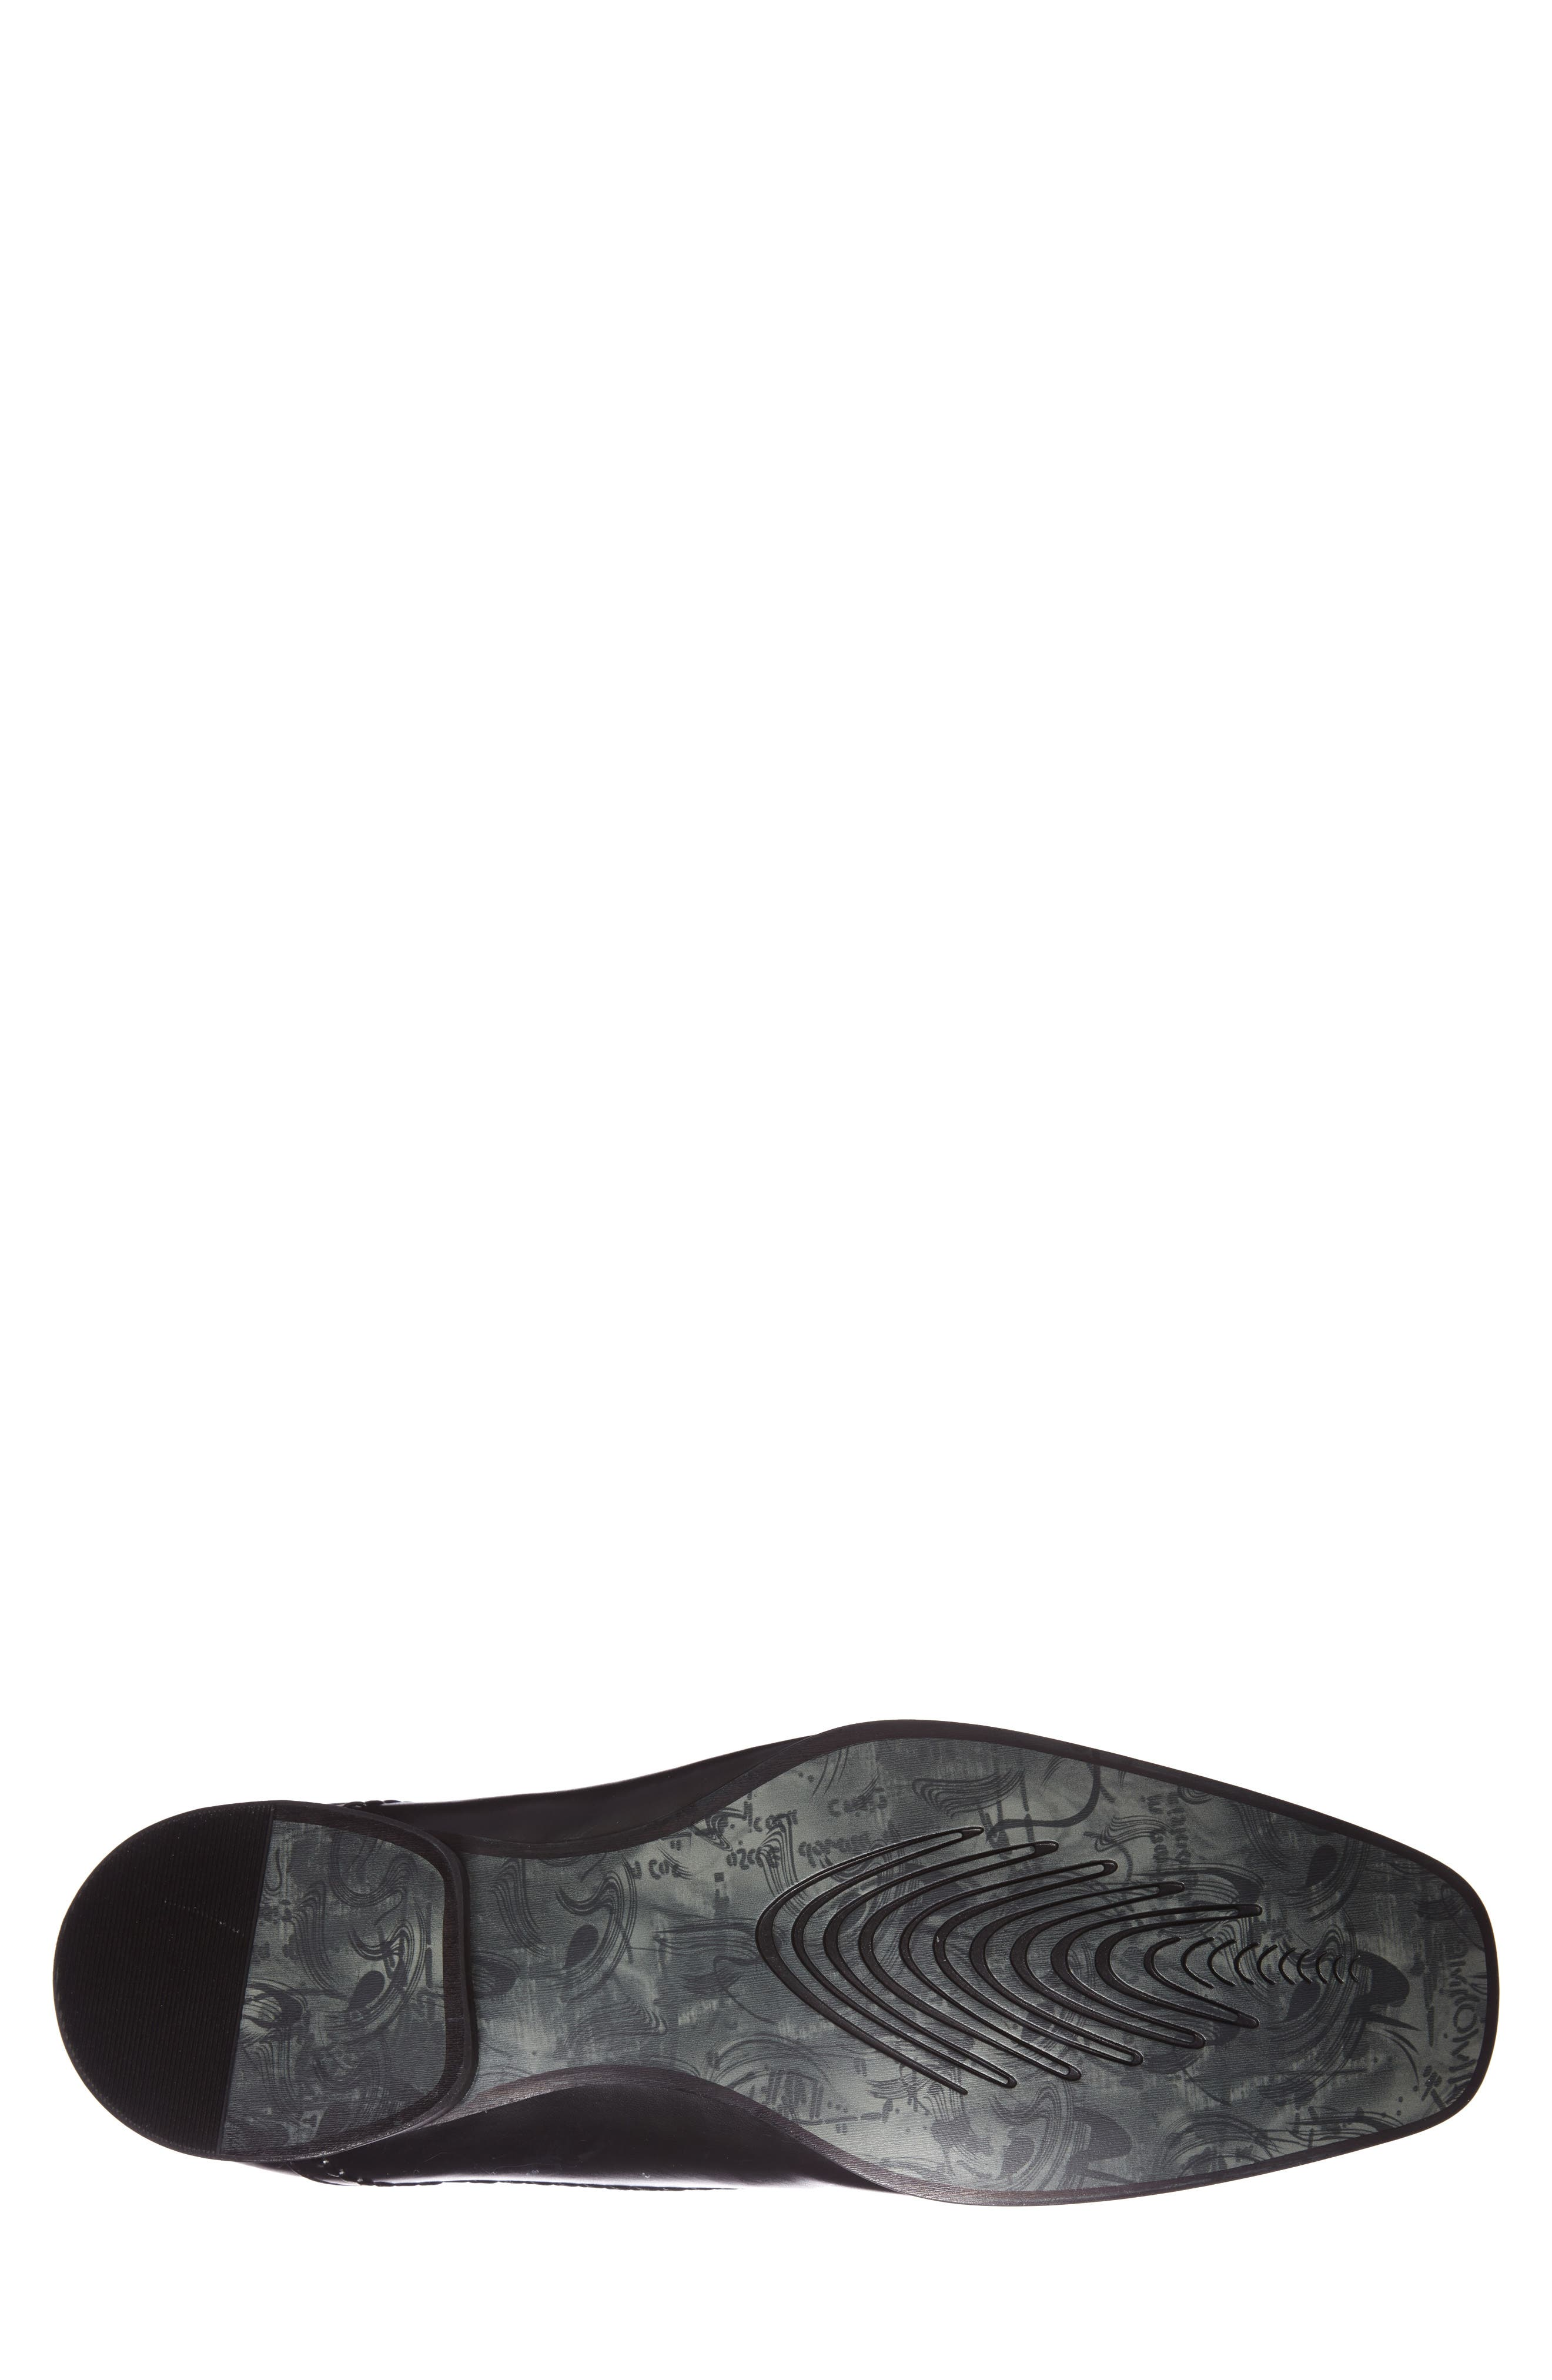 REACTION KENNETH COLE,                             'Key Note' Slip-On,                             Alternate thumbnail 5, color,                             001